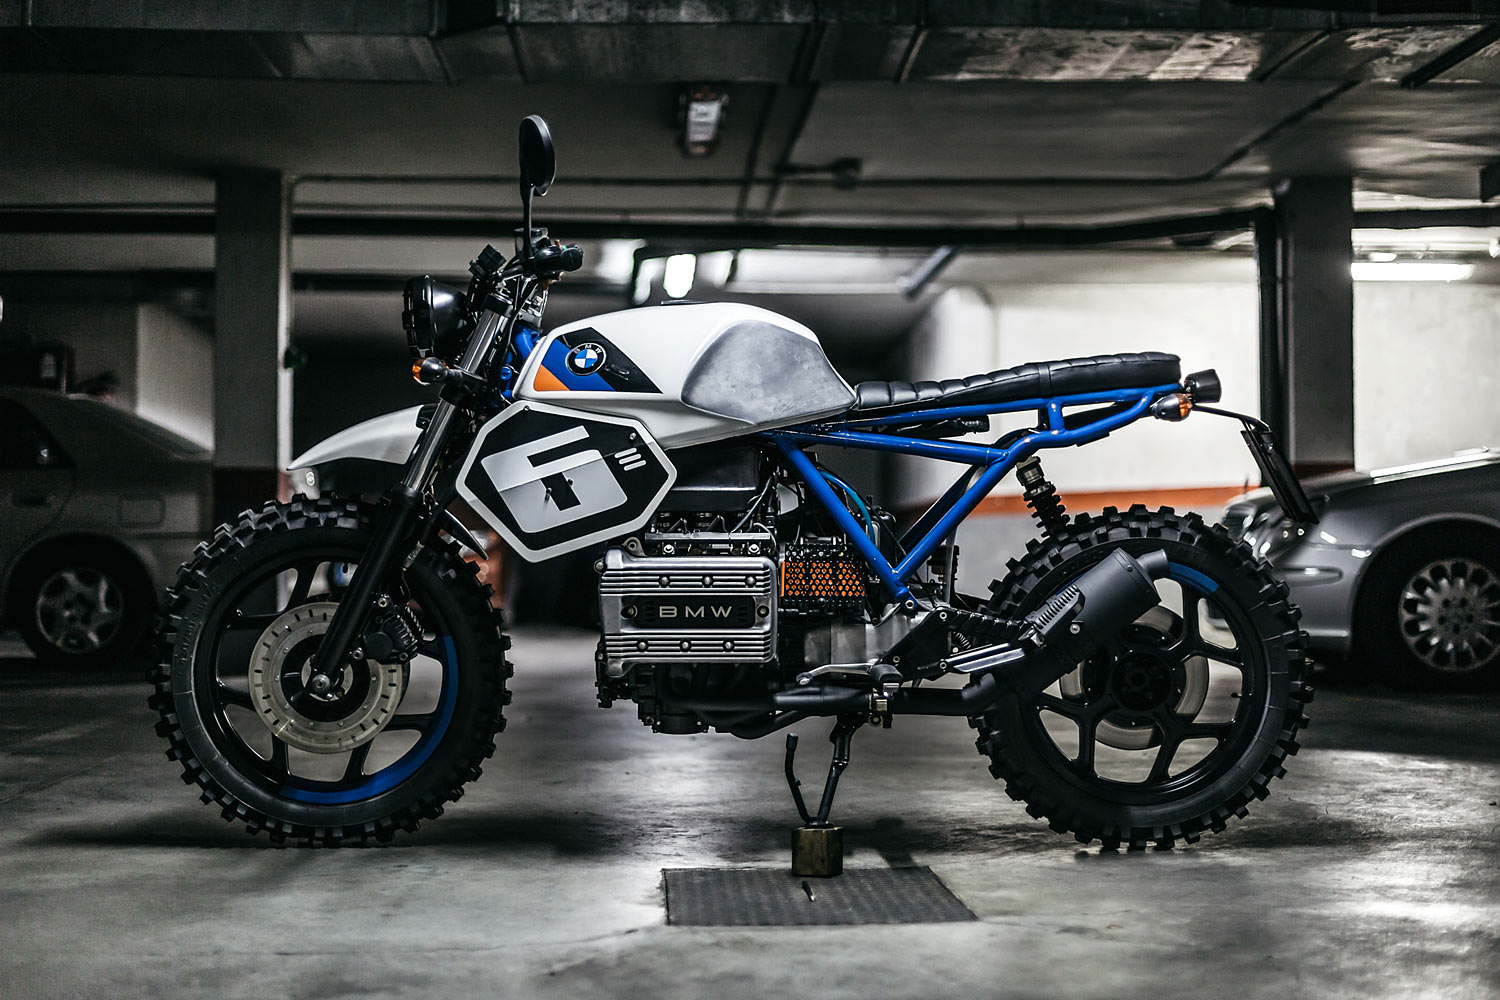 bmw k75 street tracker the foundry mc. Black Bedroom Furniture Sets. Home Design Ideas